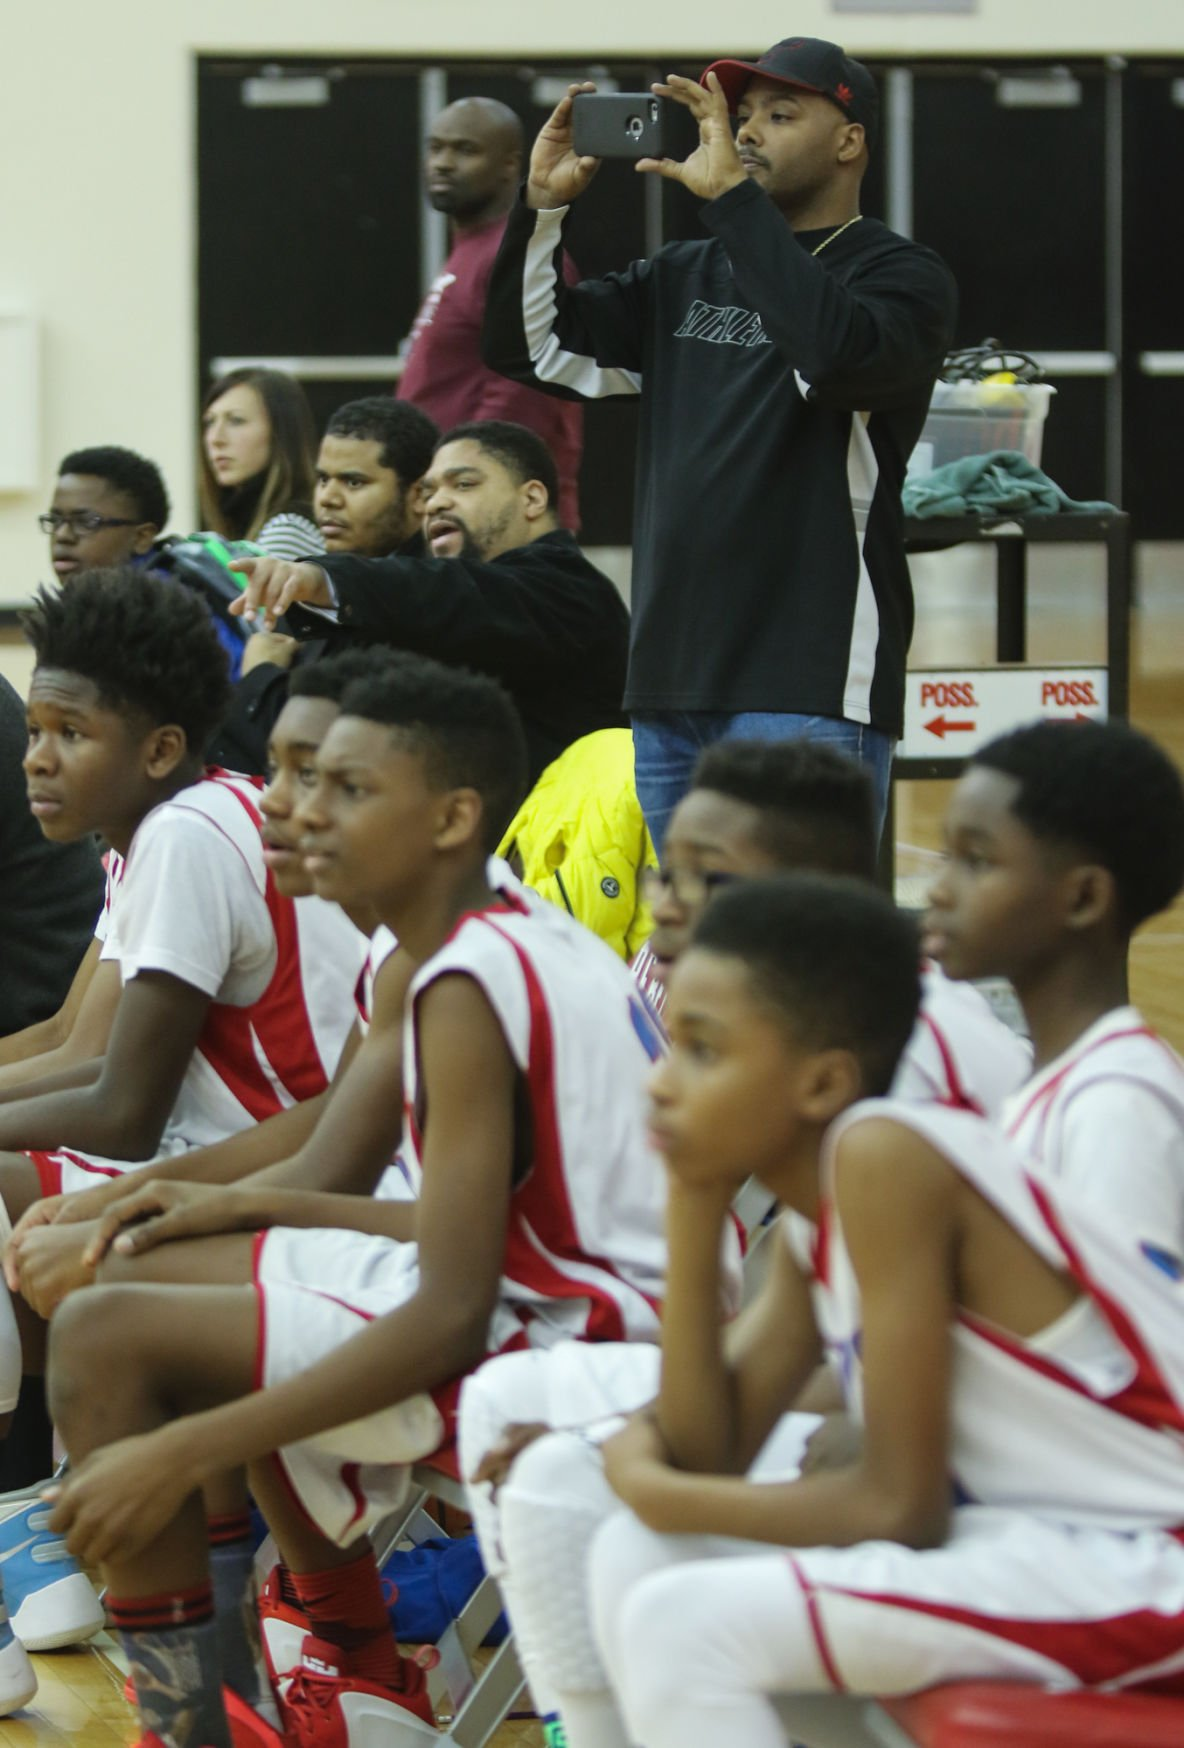 Lansing's annual Crosstown Classic basketball game